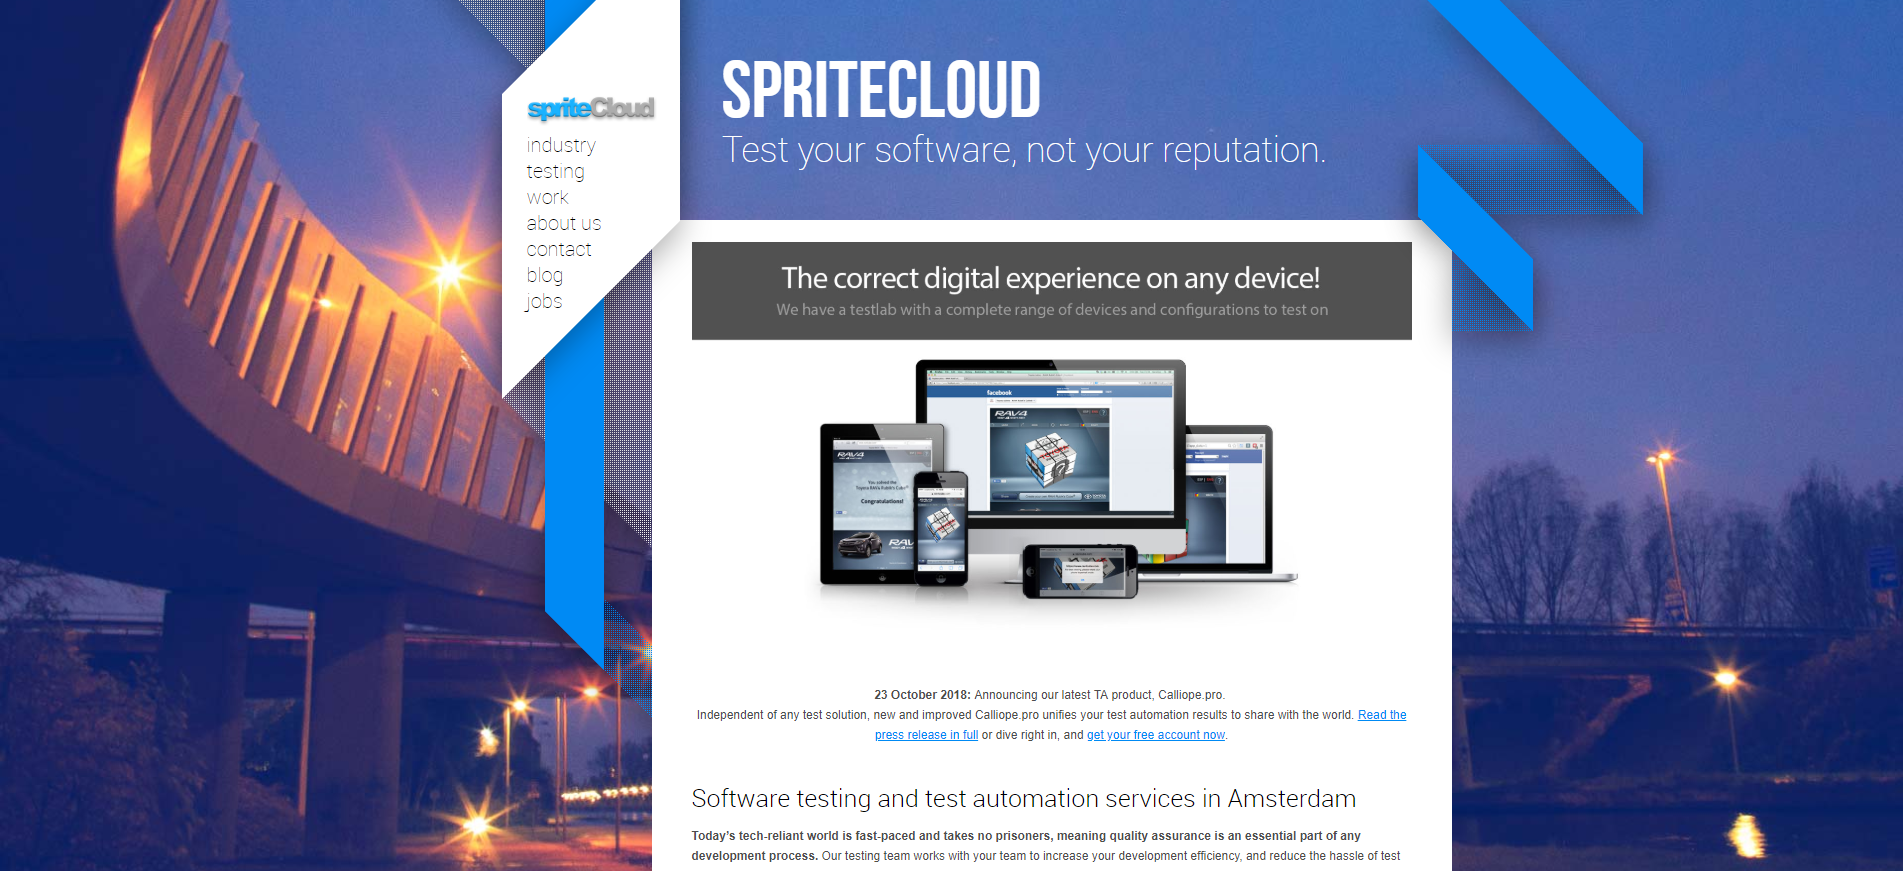 spriteCloud website in 2015